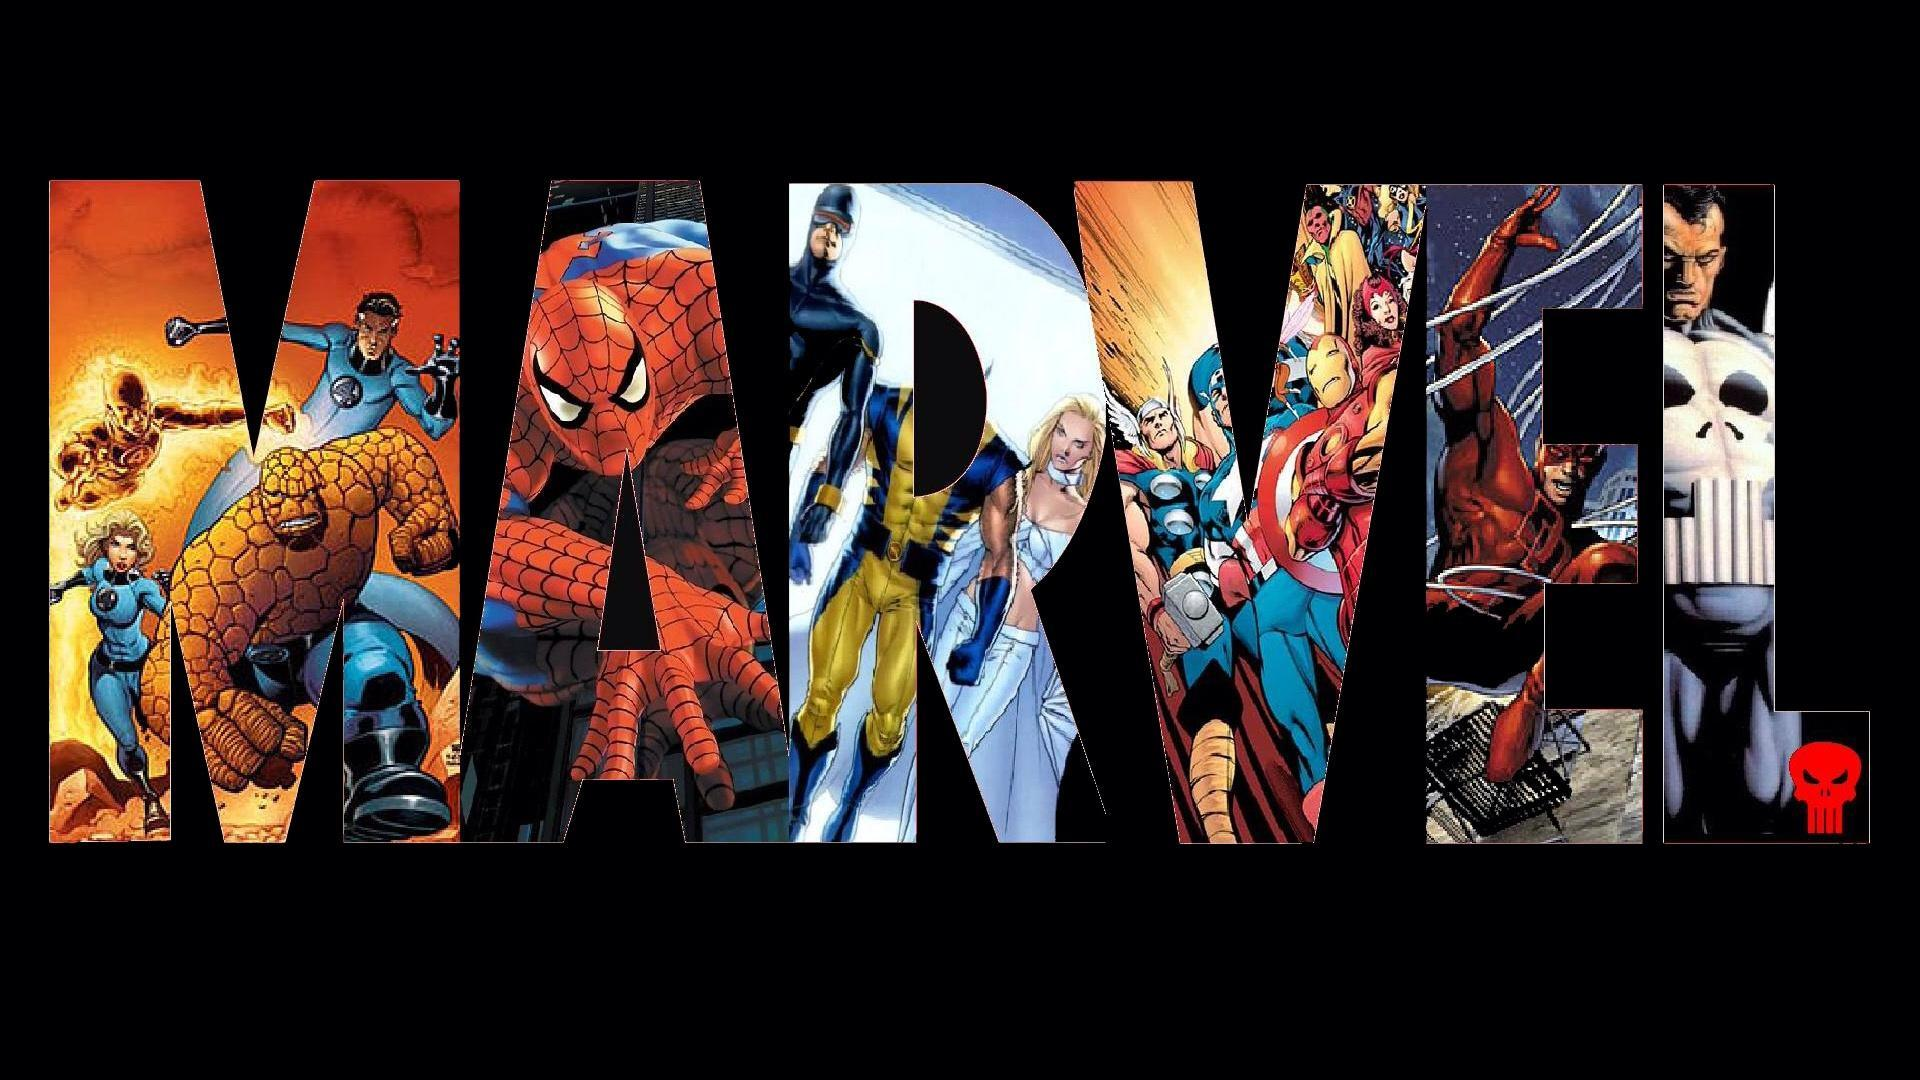 Who is your favorite Super Hero?